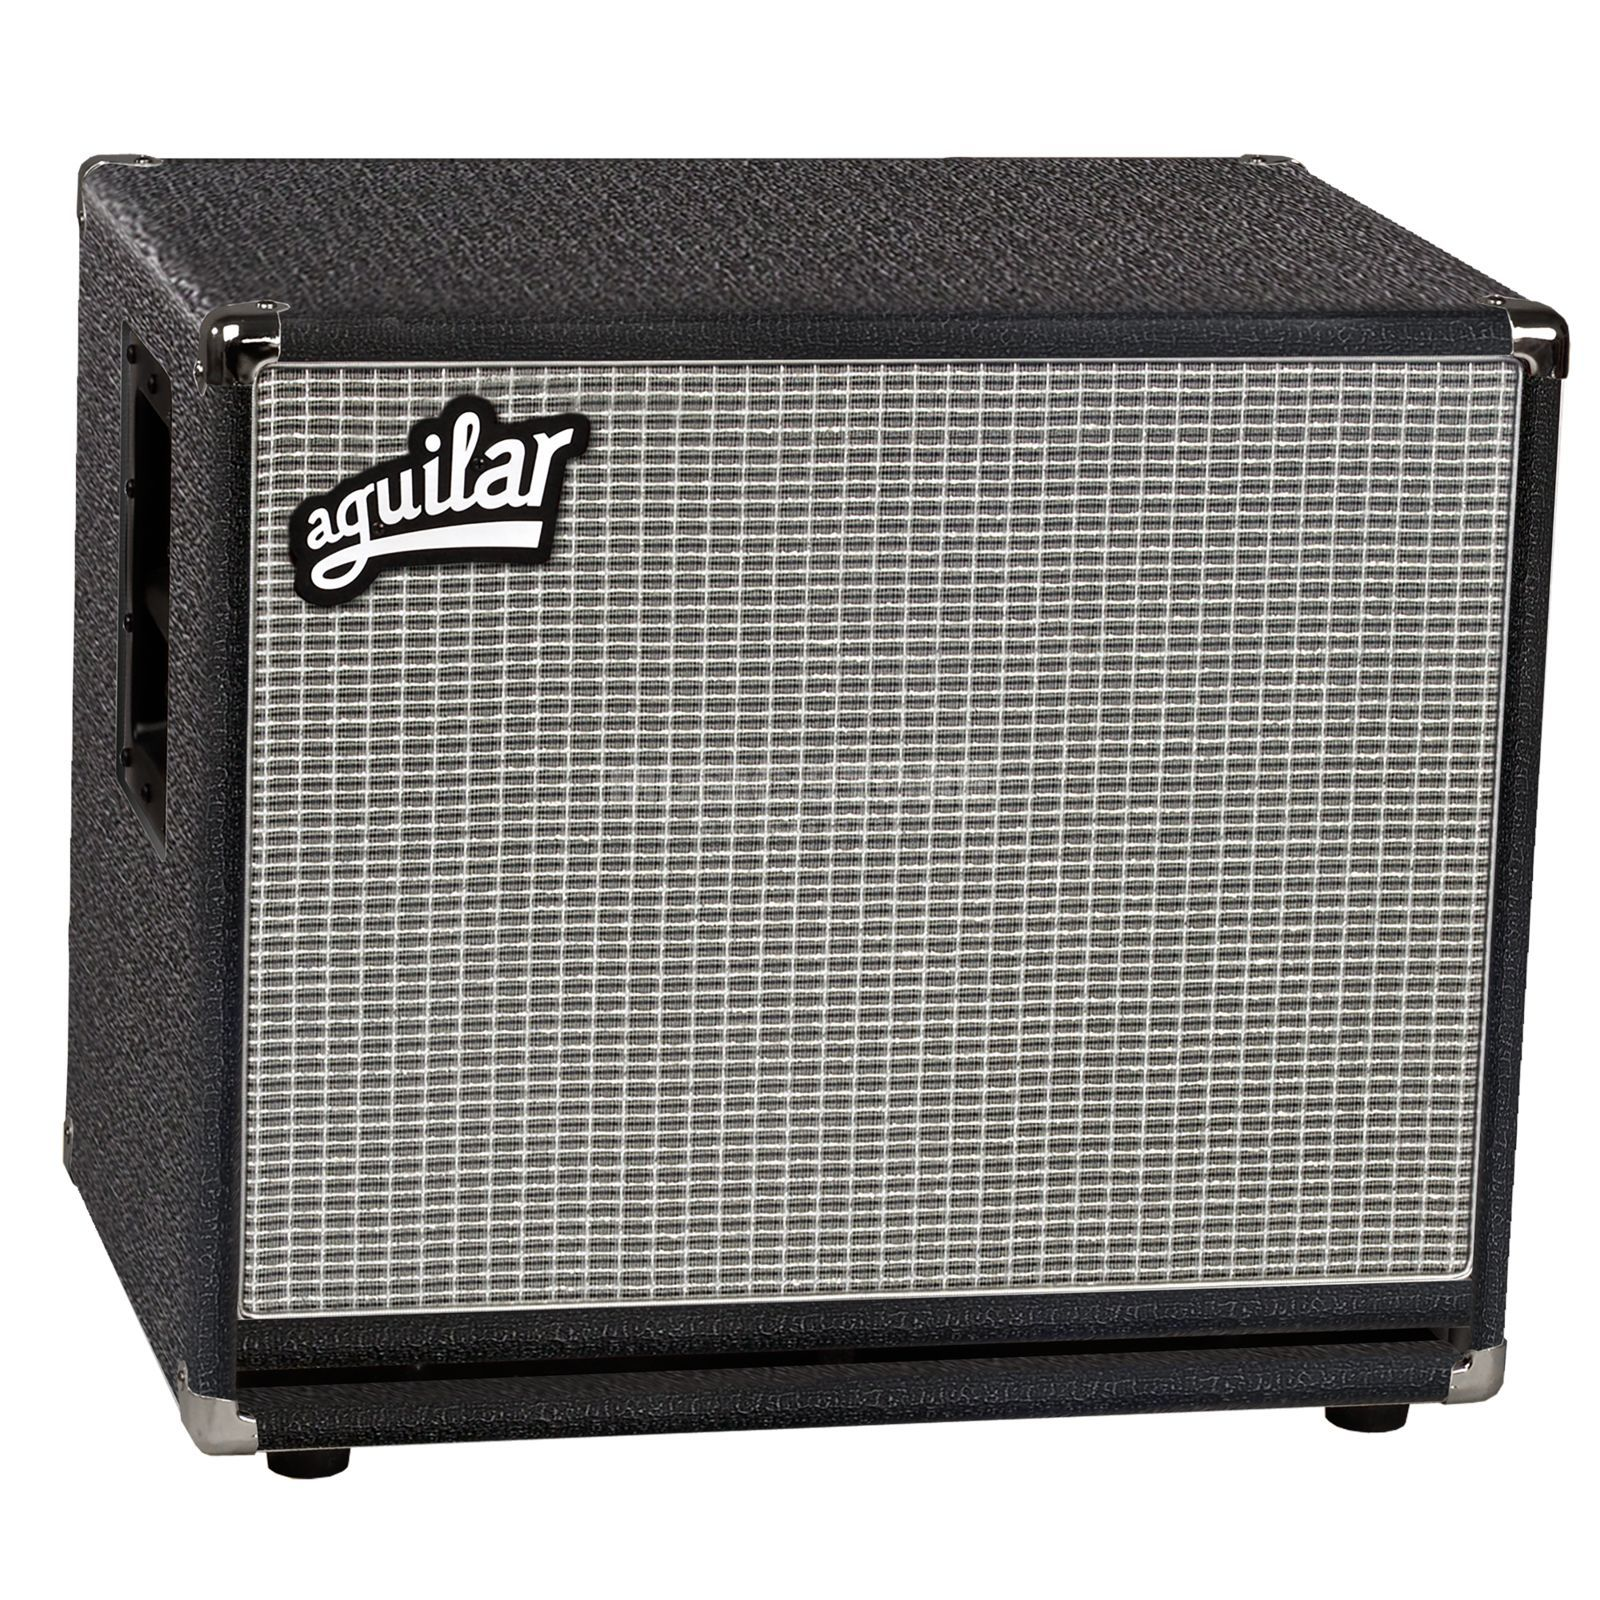 Aguilar DB 115 Cabinet 8 Ohm Classic zwart Productafbeelding